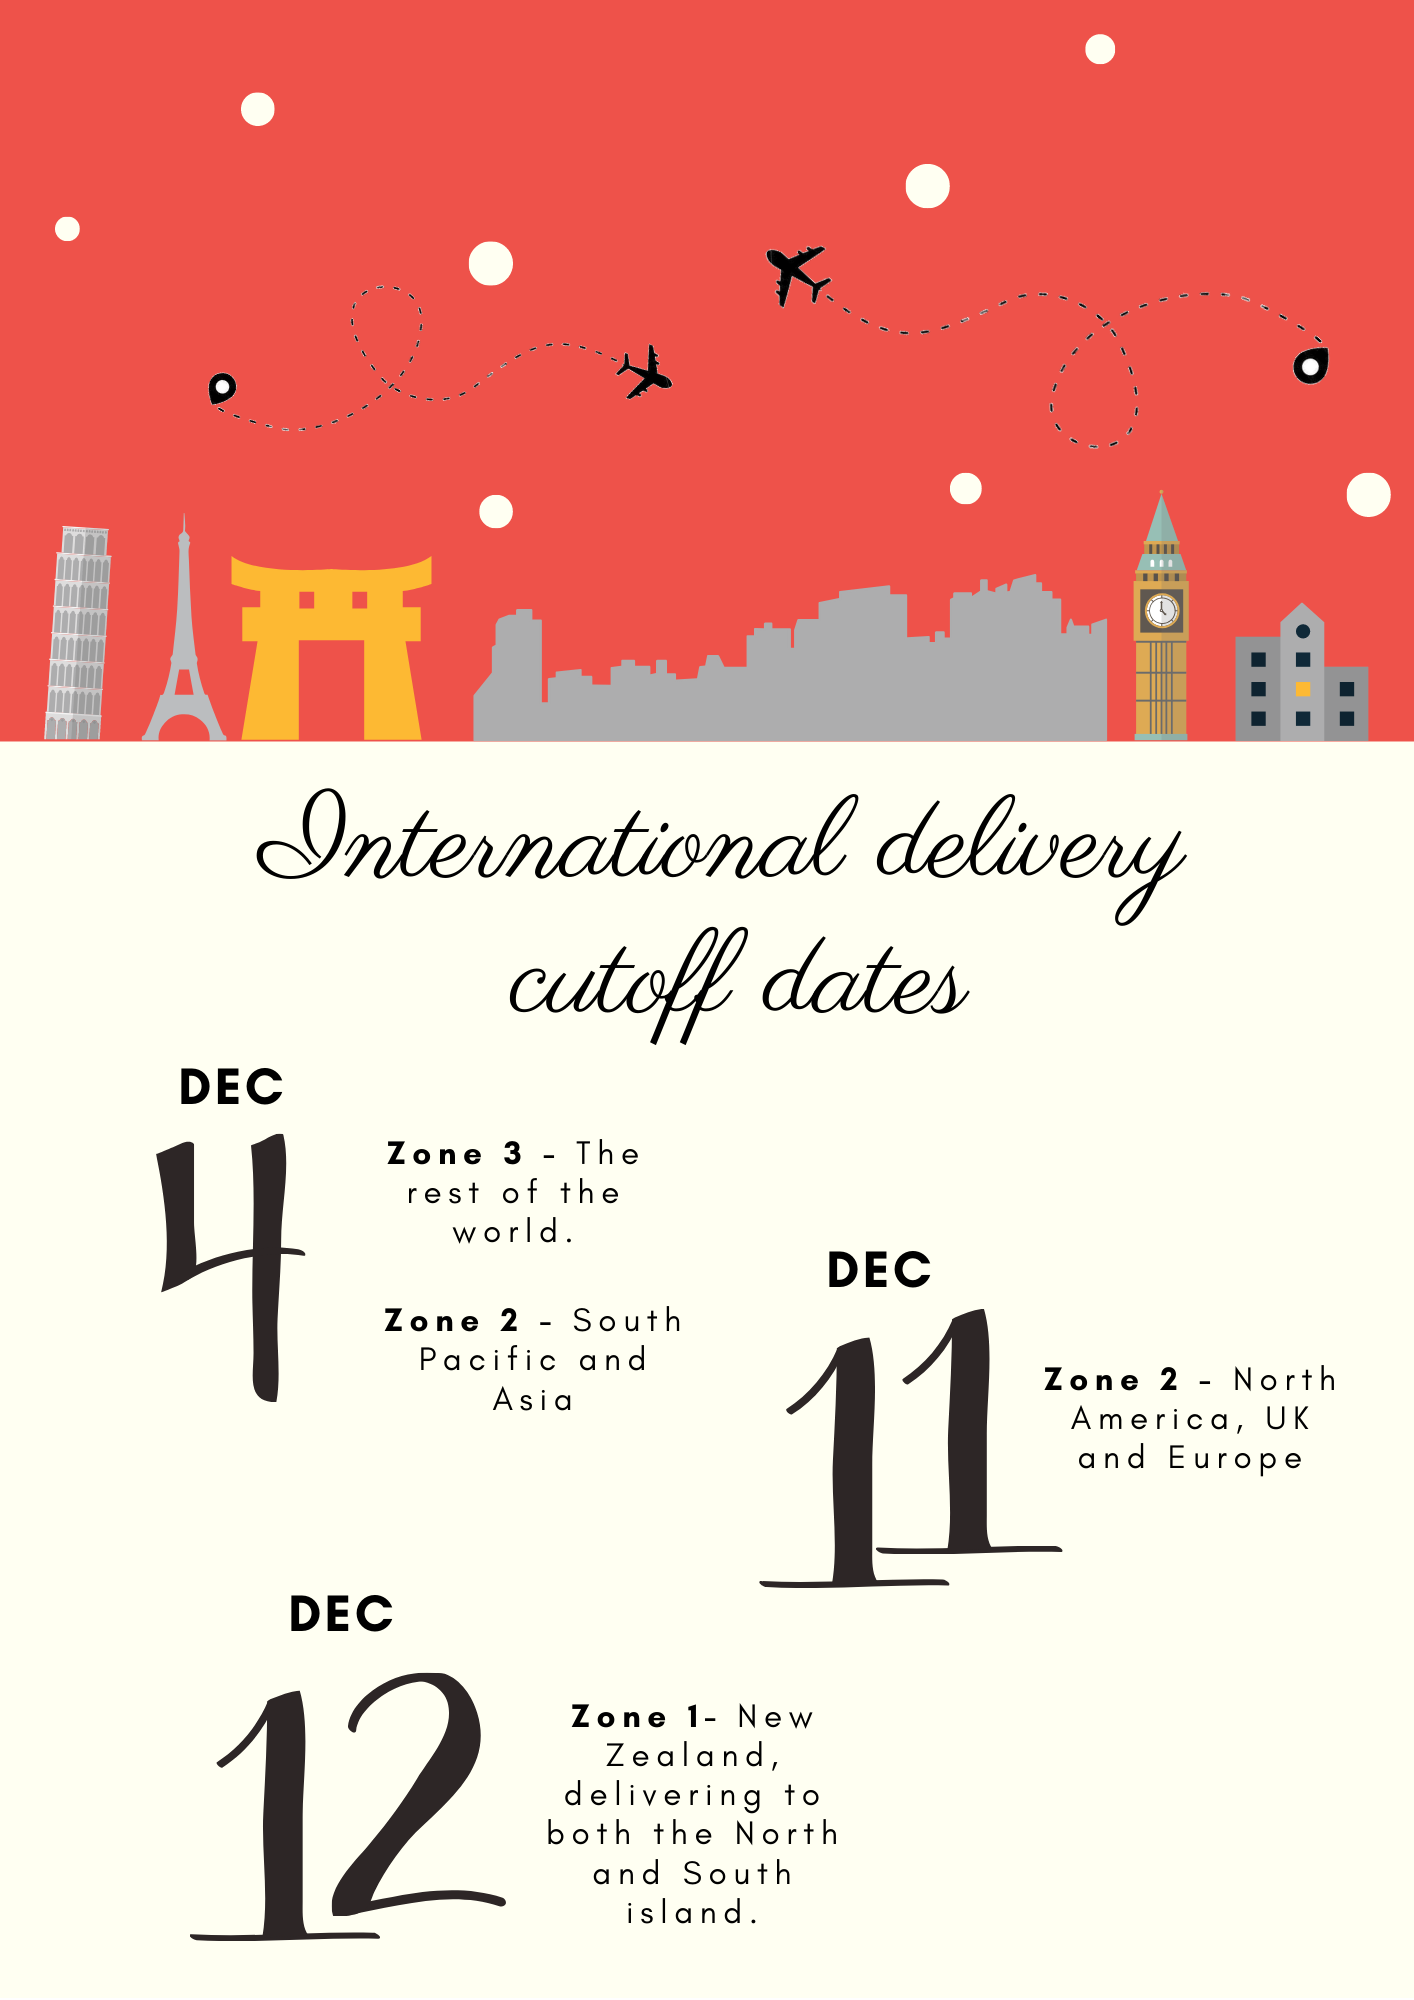 TECMASK Christmas International Delivery Cut Off Dates